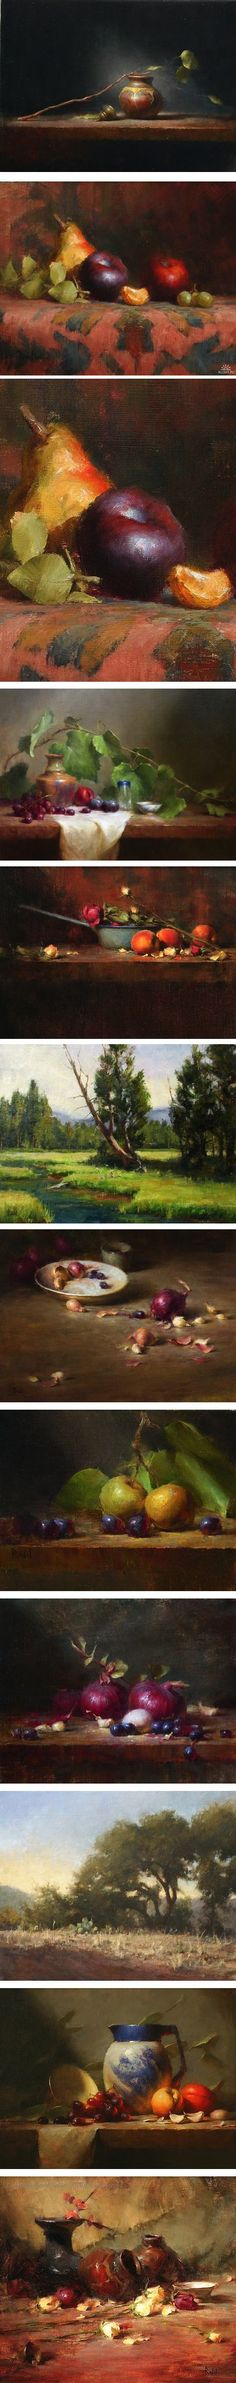 Originally from Indiana, still life and landscape painter David Riedel studied art in Arizona, and later at the Art Students League in New York, where he studied with noted painter and teacher David Leffel.